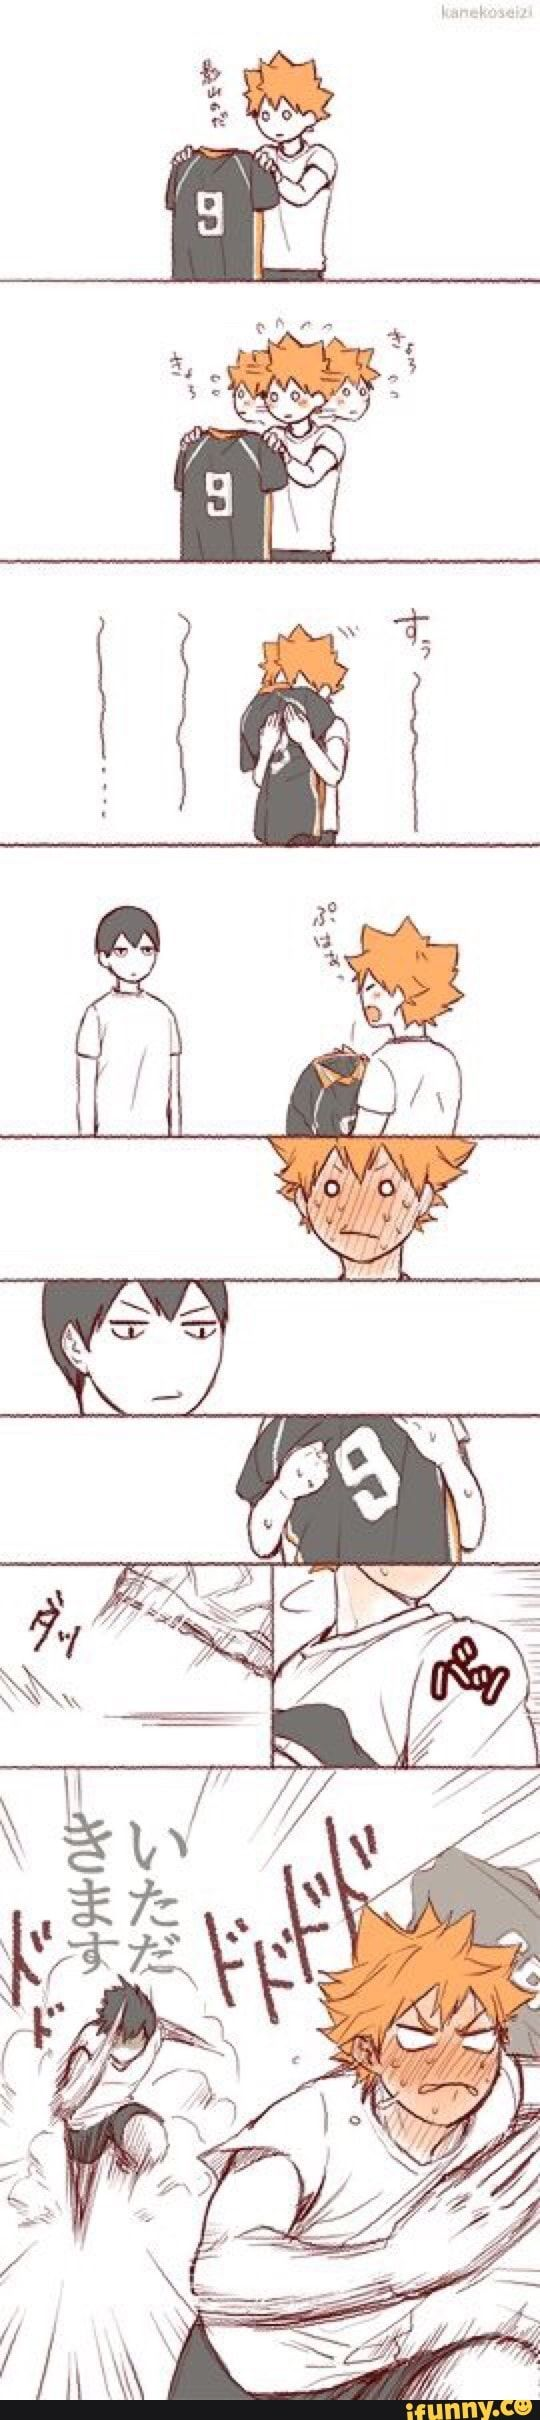 Hinata Horny throughout 2866 best haikyuu images on pinterest | art gallery, fan art and